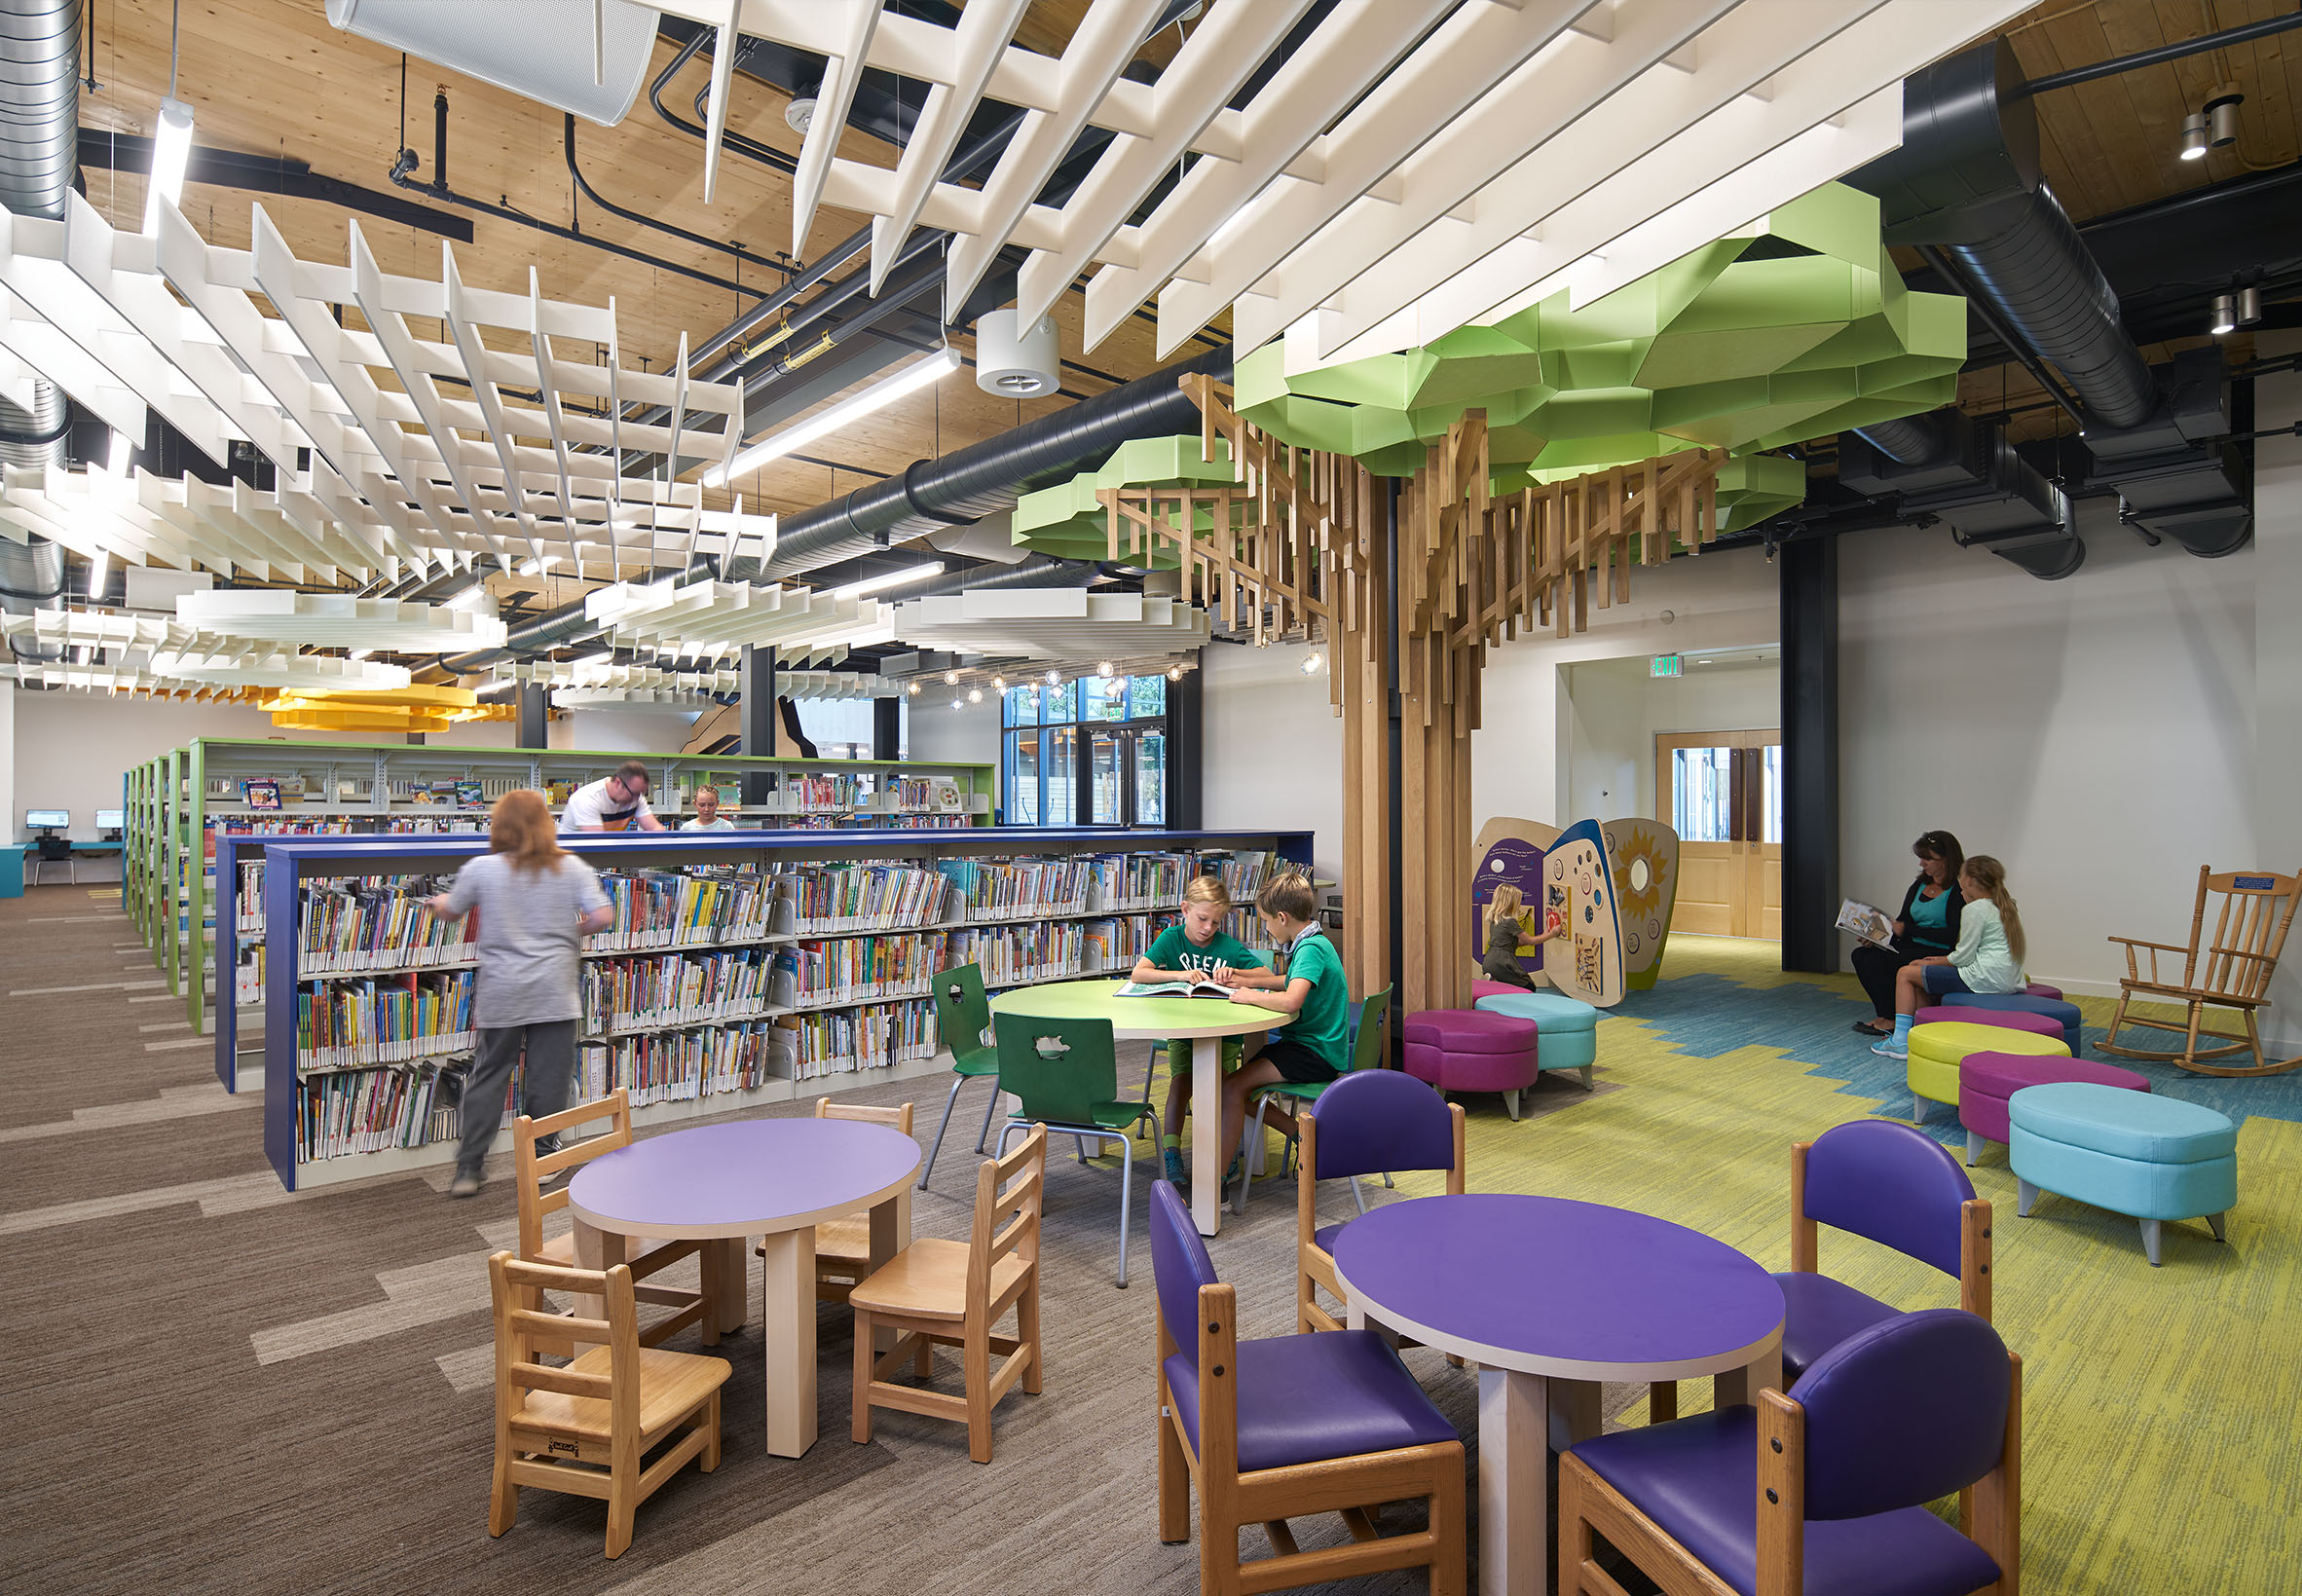 Brentwood Public Library Interior with kids. books and CLT Diaphragm